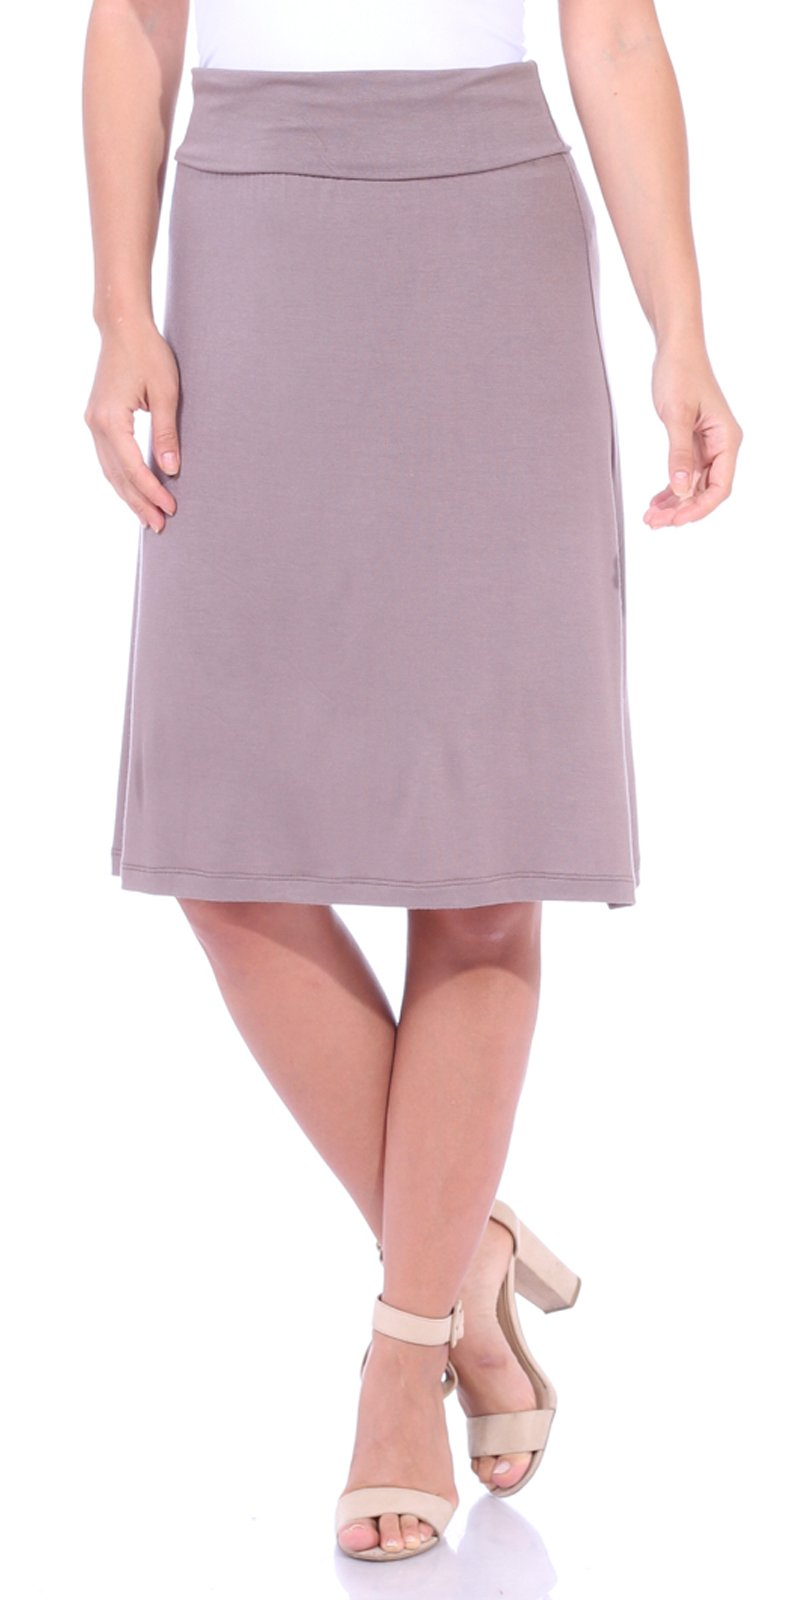 Popana Women's Casual Stretch Midi Knee Length Short Summer Skirt - Made in USA Medium Toffee